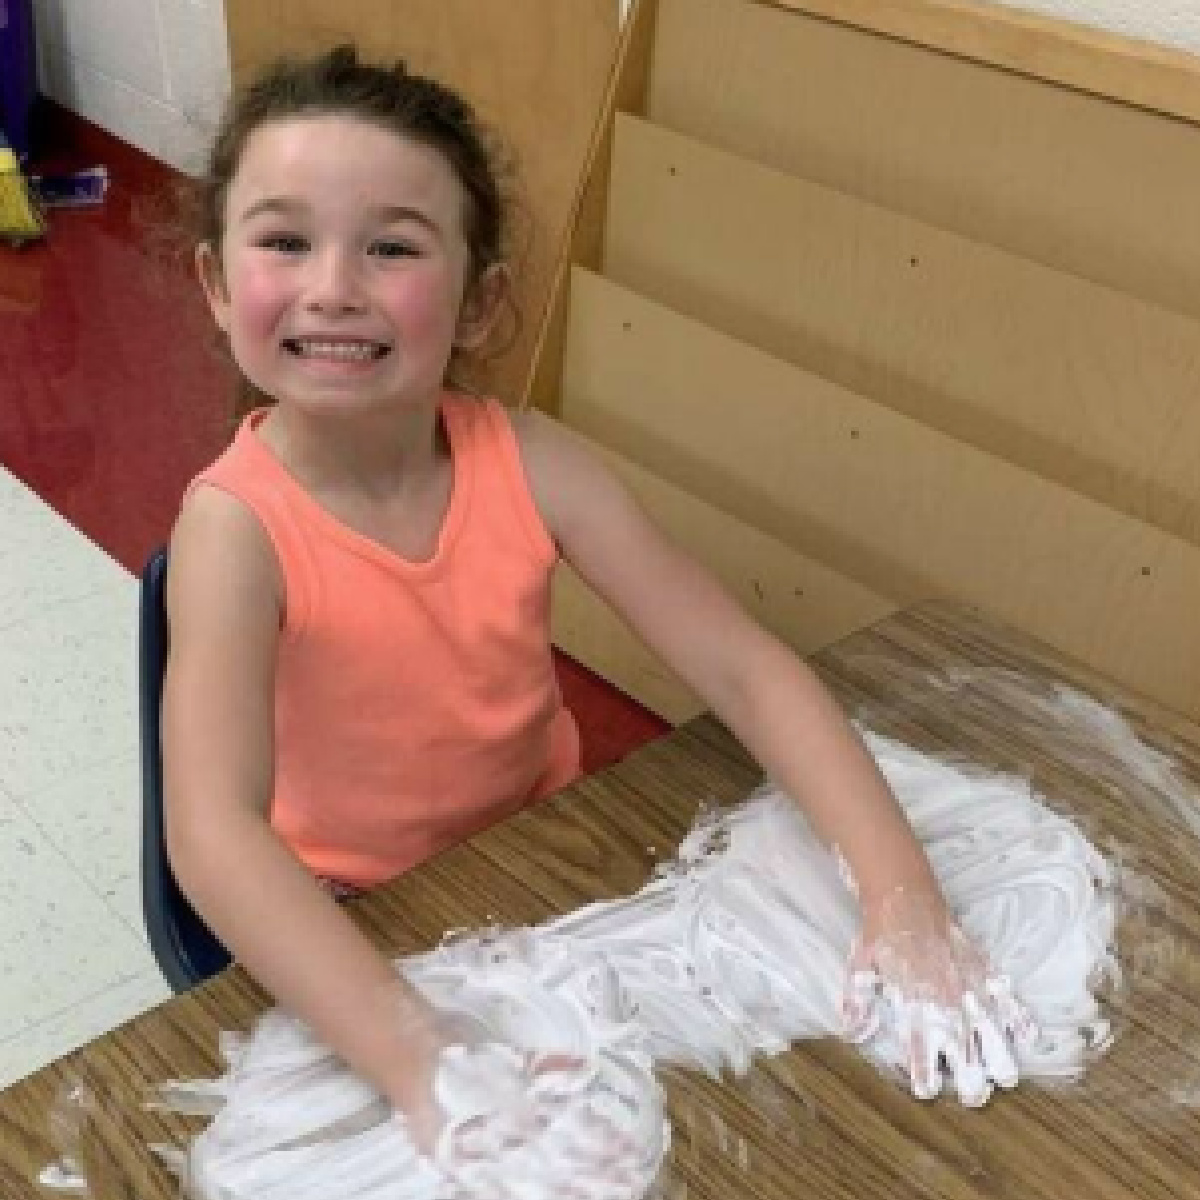 Caylee Anderson's big smile shows how much fun she is having at kinder camp at Cooleemee Elementary